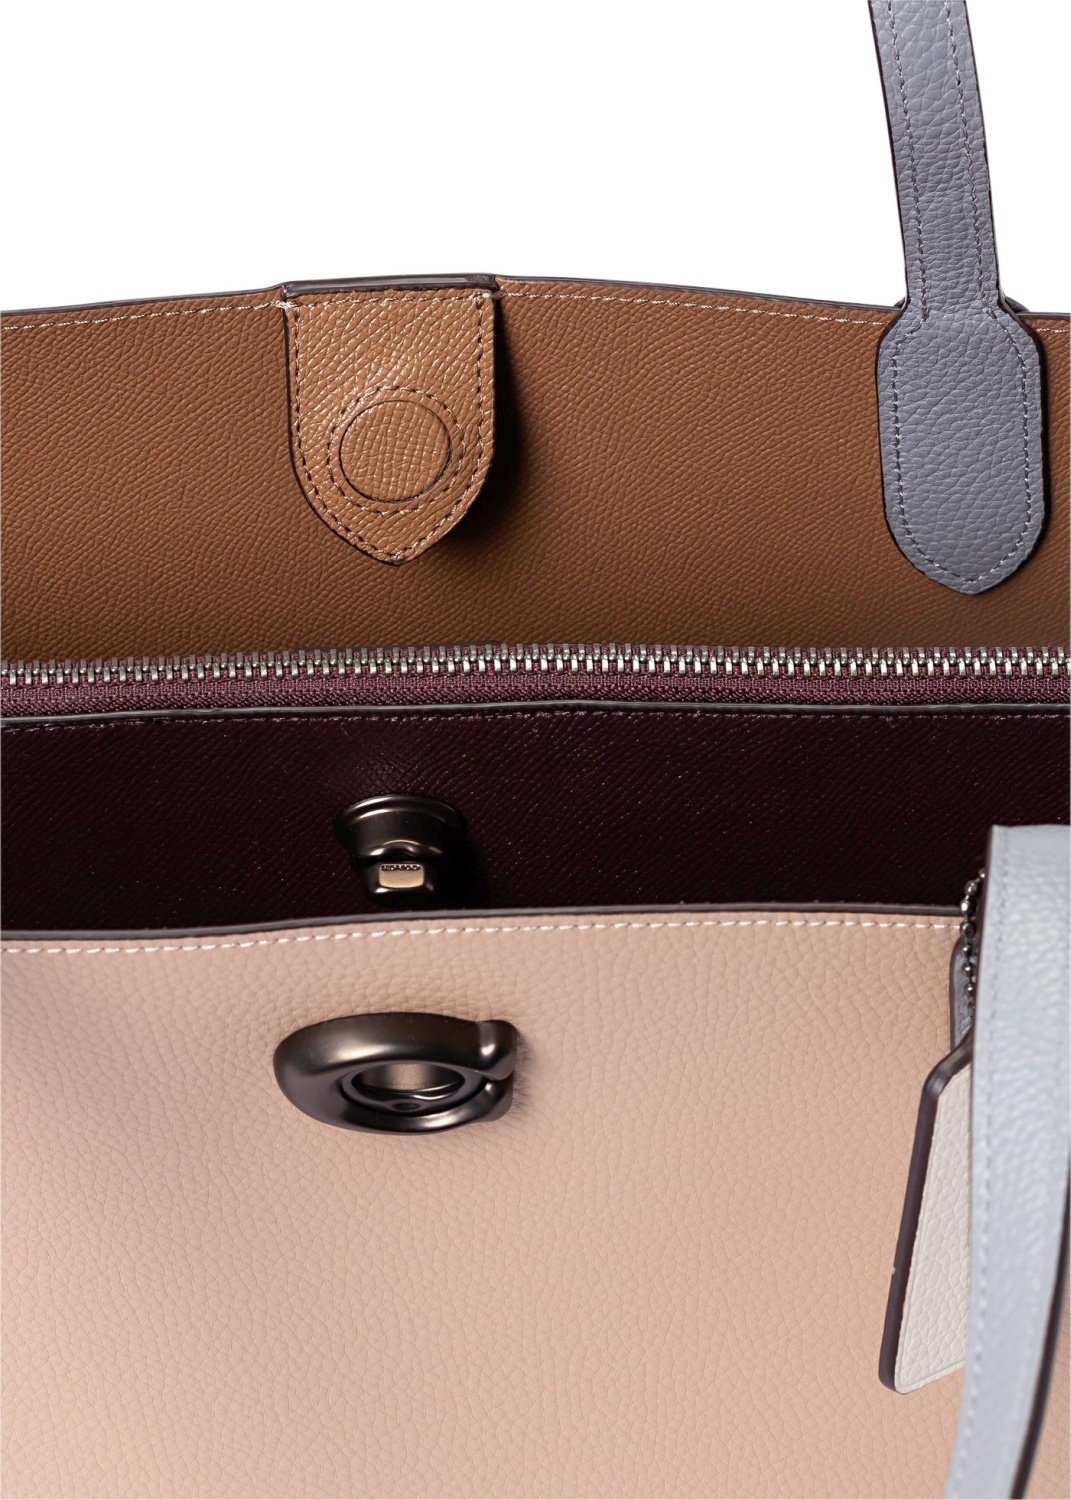 colorblock leather willow tote image number 3